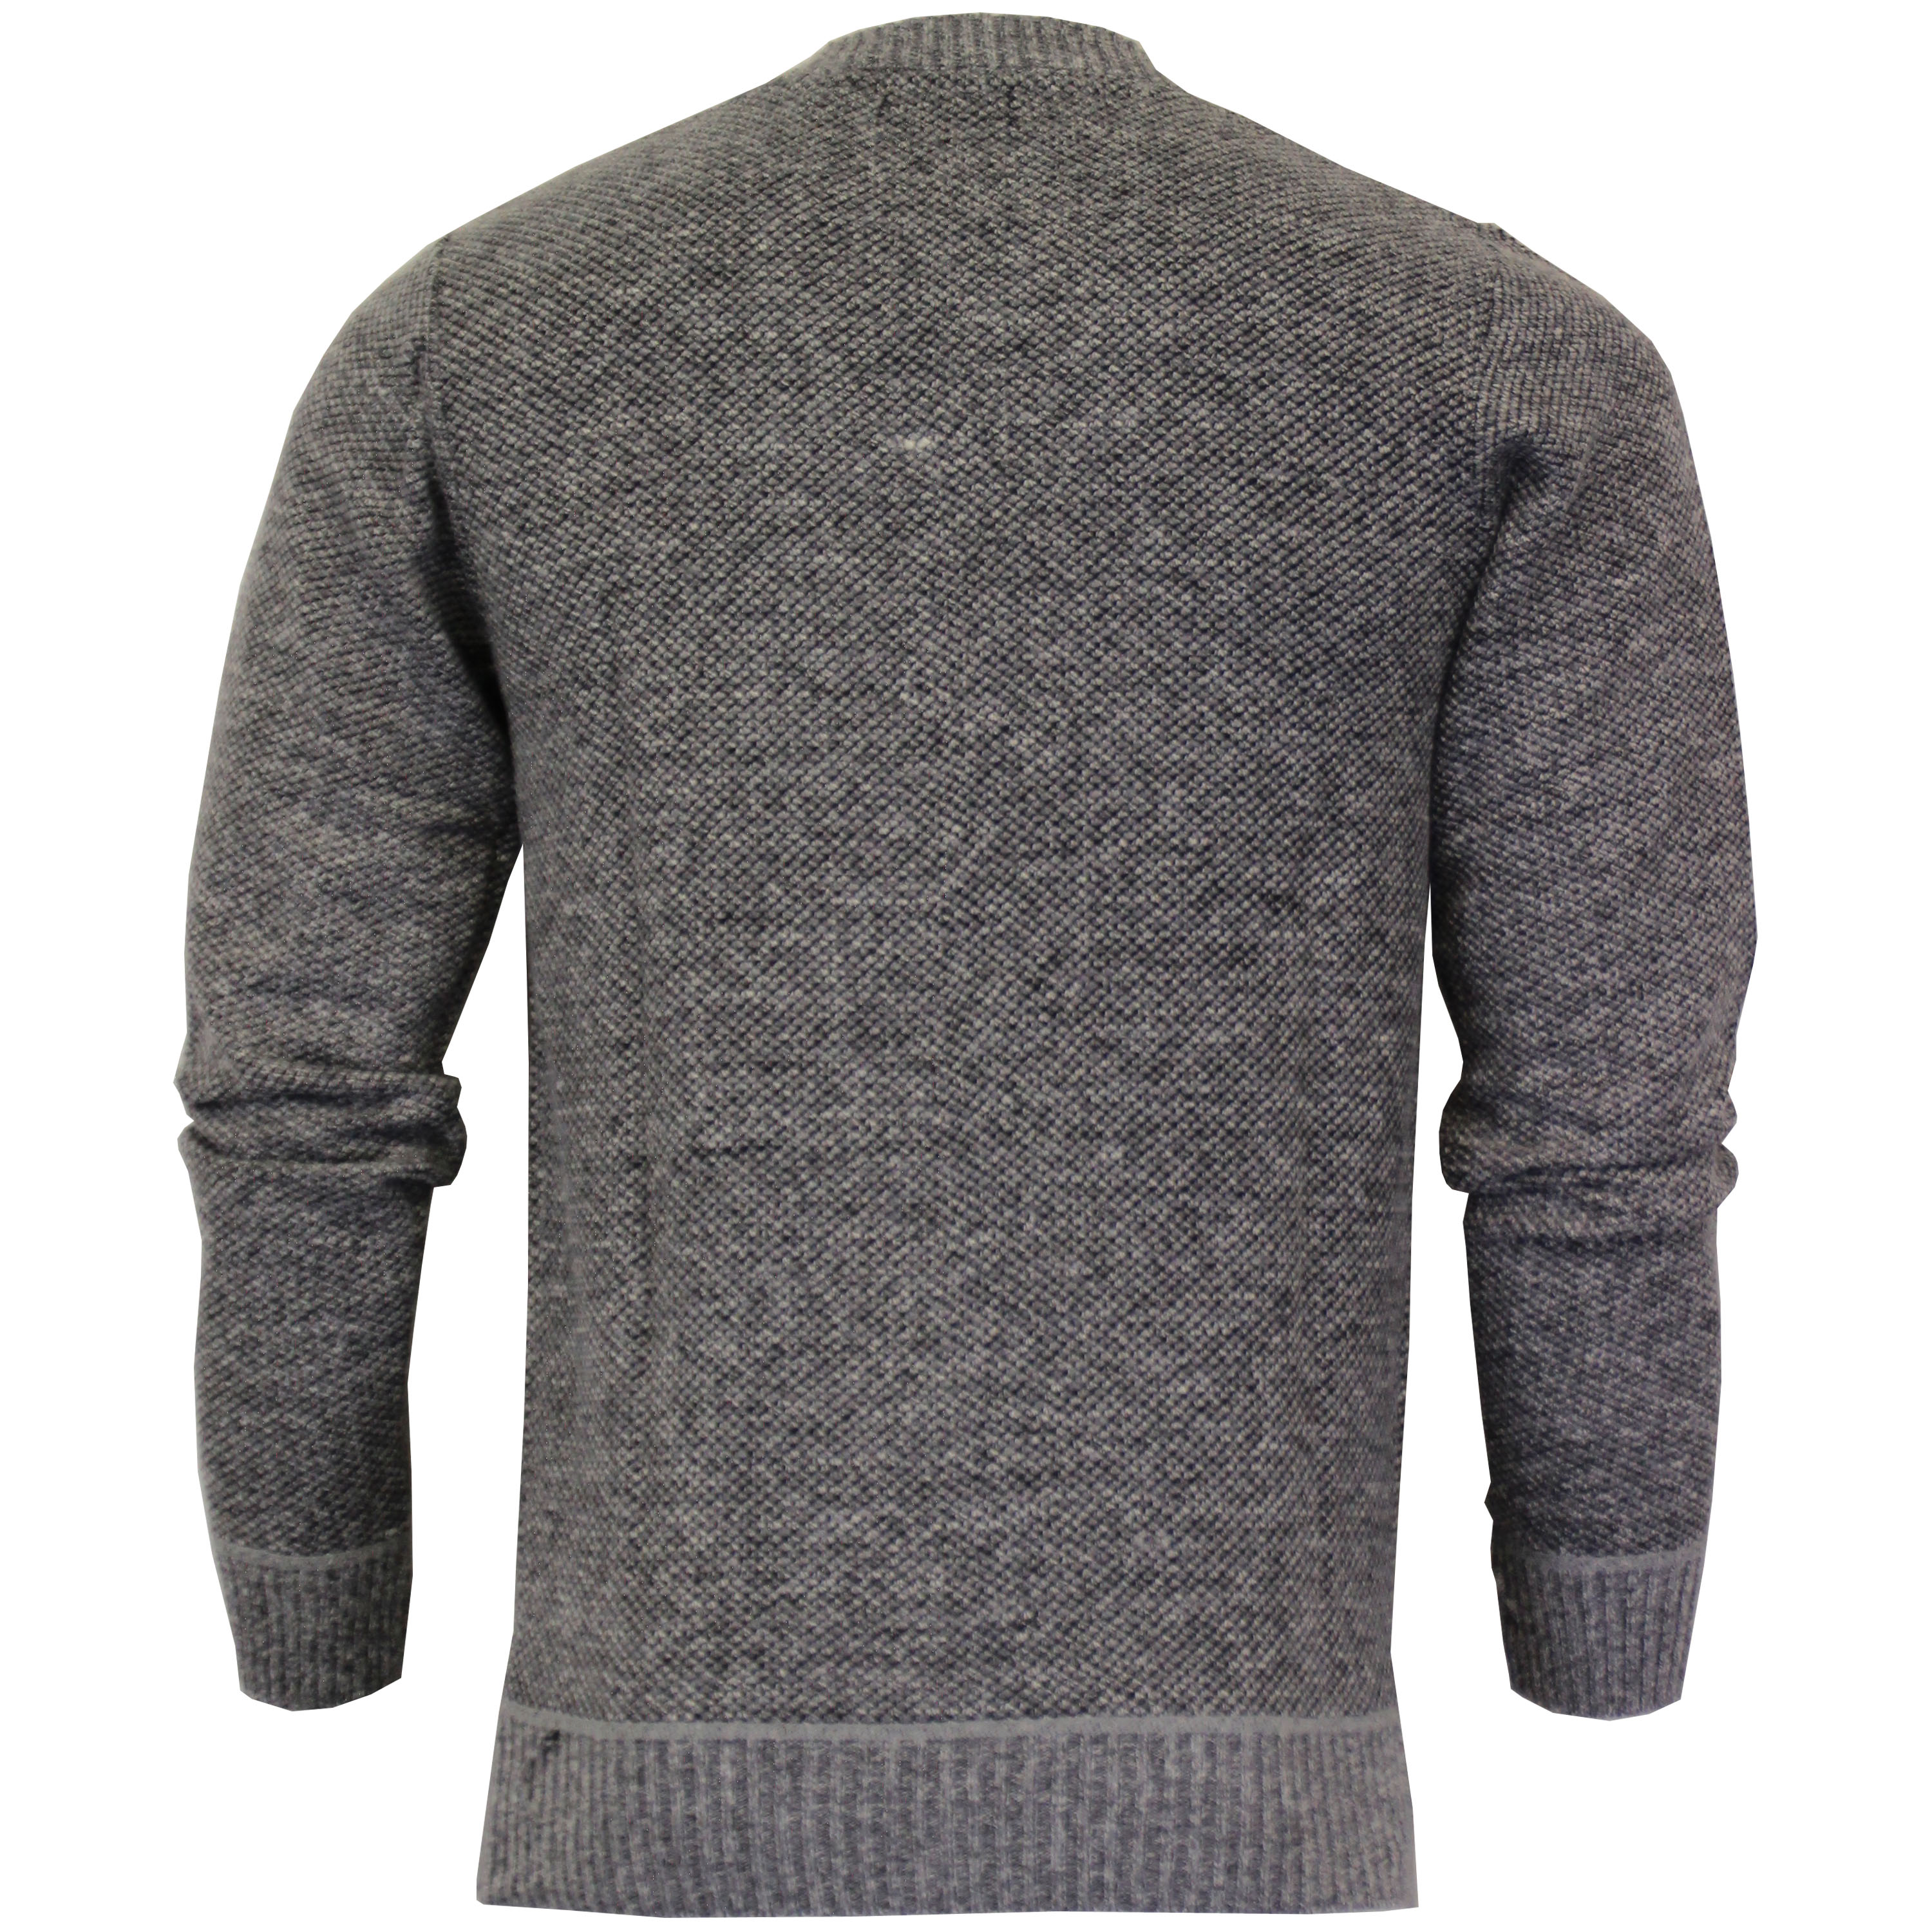 Mens-Jumper-Brave-Soul-Knitted-Sweater-Pullover-GOODWIN-Crew-Neck-Top-Winter-New thumbnail 9